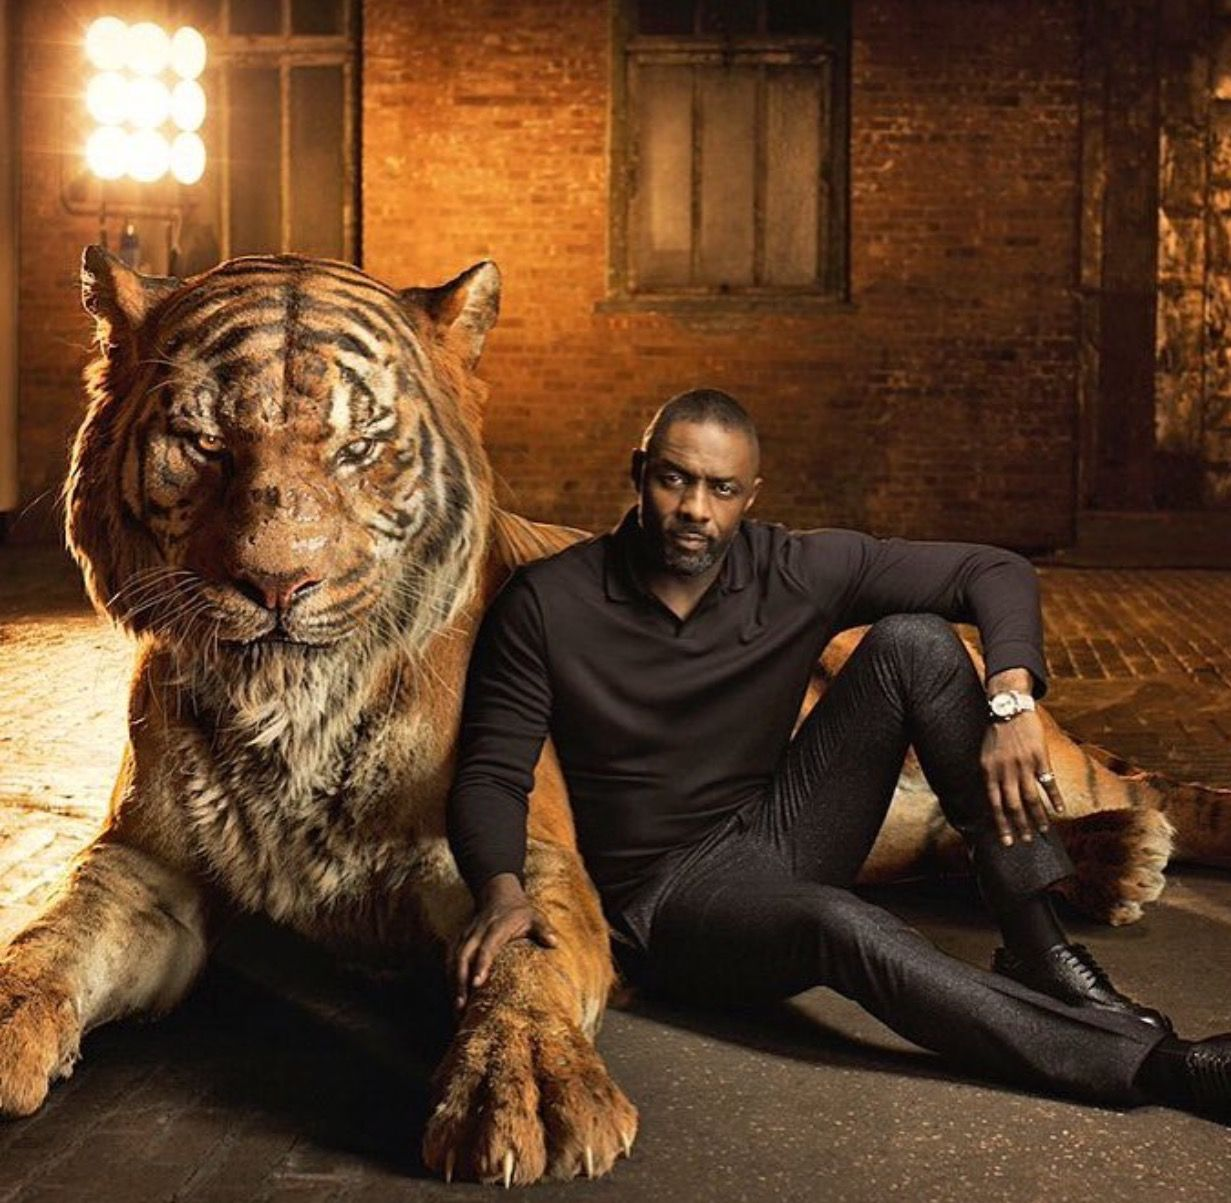 Idris elba as shere khan from the jungle book cast portraits shere khan reigns with fear elba says of the tiger he terrorizes everyone he encounters